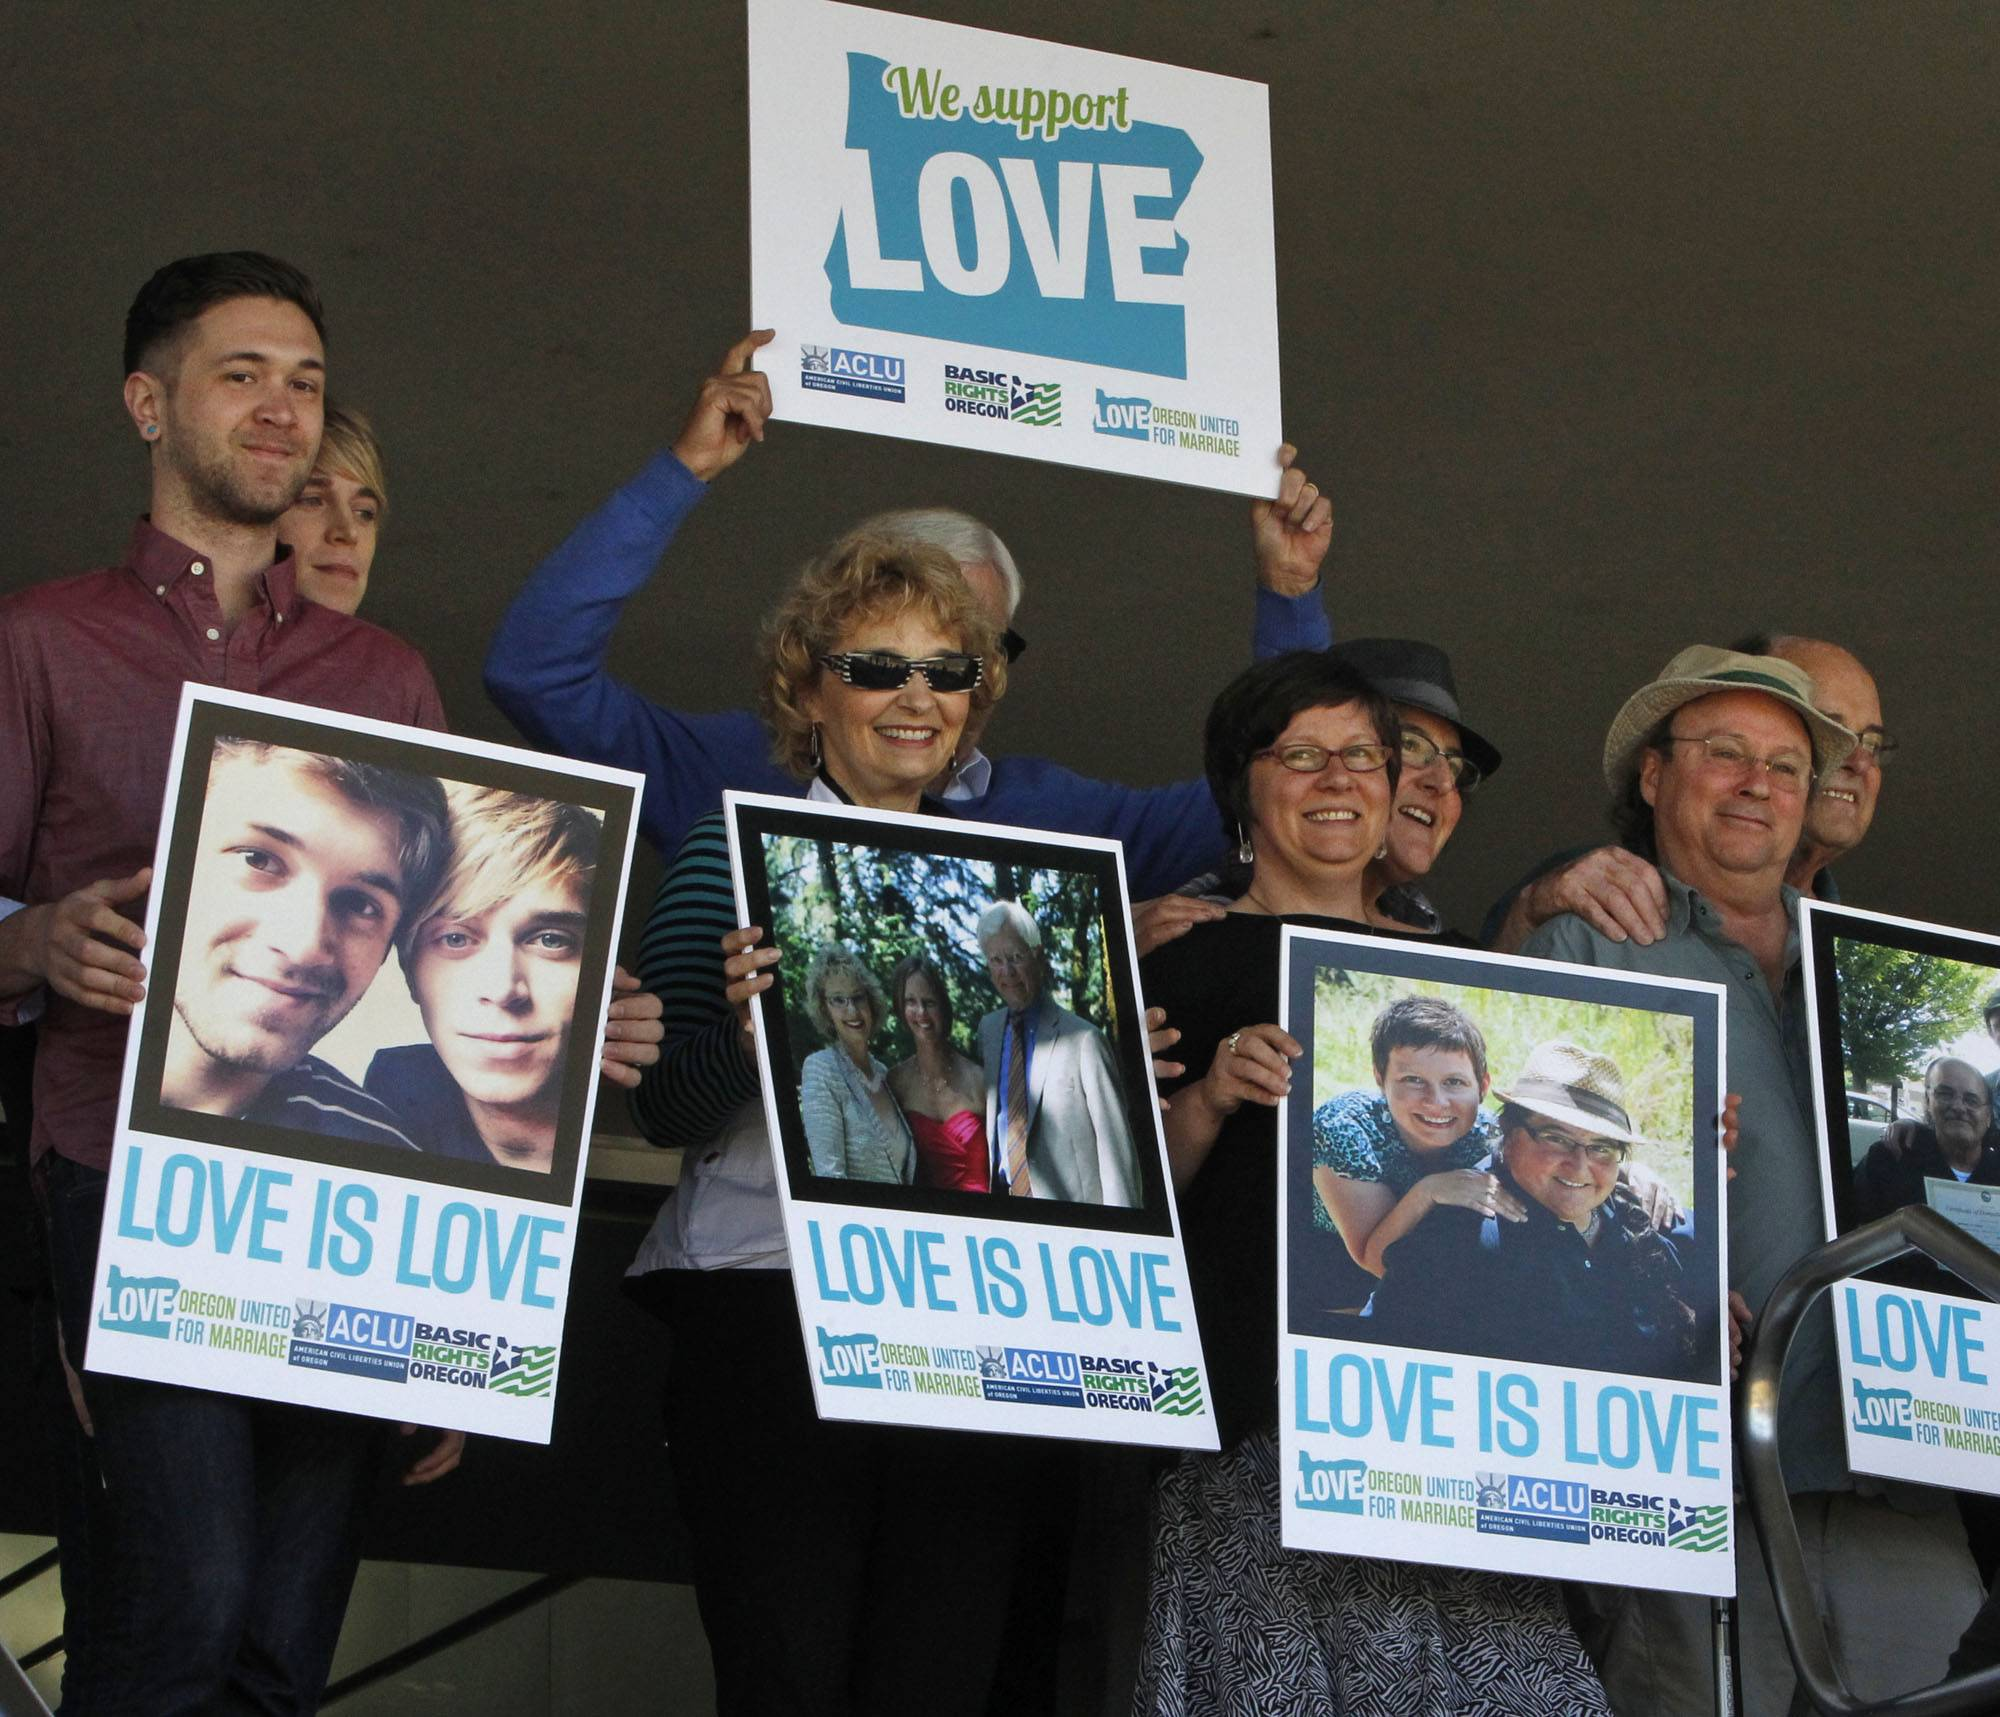 Supporters of same-sex marriage hold photos of themselves and their family members or partners on the steps of the Wayne L Morse U.S. Courthouse Wednesday in Eugene, Ore. A federal judge on Monday struck down Oregon's voter-approved ban on gay marriage, saying it is unconstitutional.